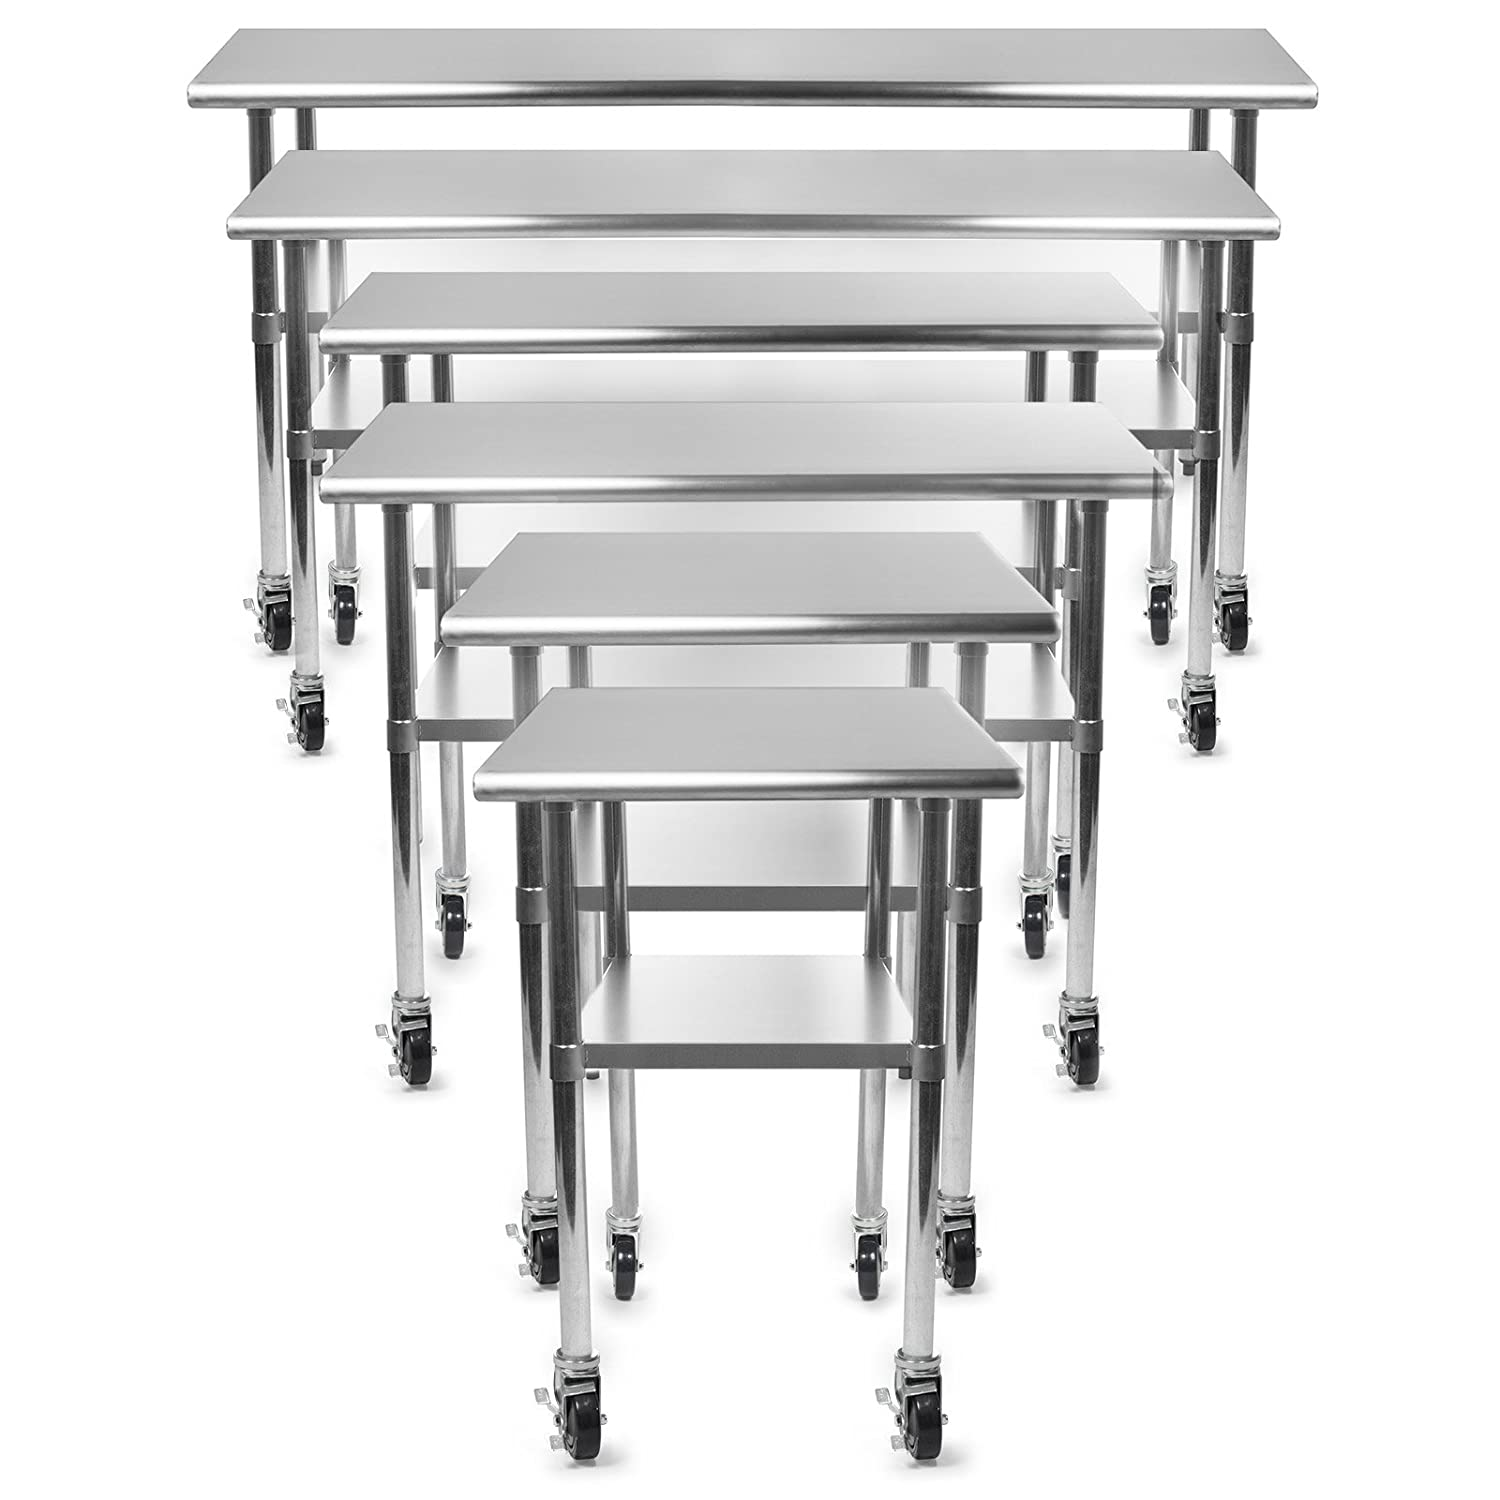 Amazoncom Gridmann NSF Stainless Steel Commercial Kitchen Prep - Stainless steel work table with casters